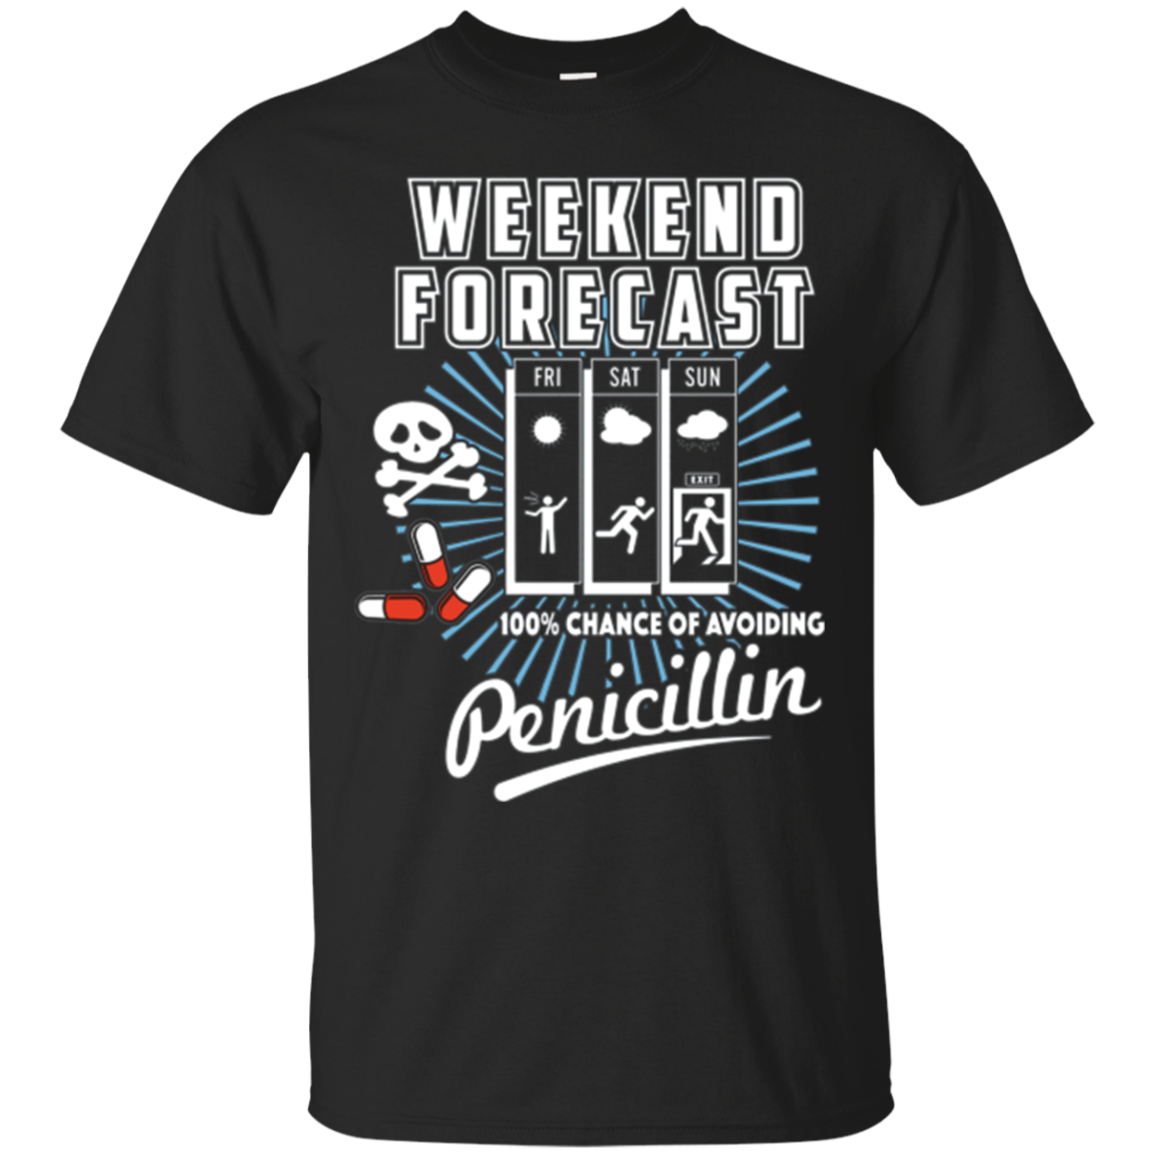 Weekend Forecast 100% Chance of Avoiding Penicillin